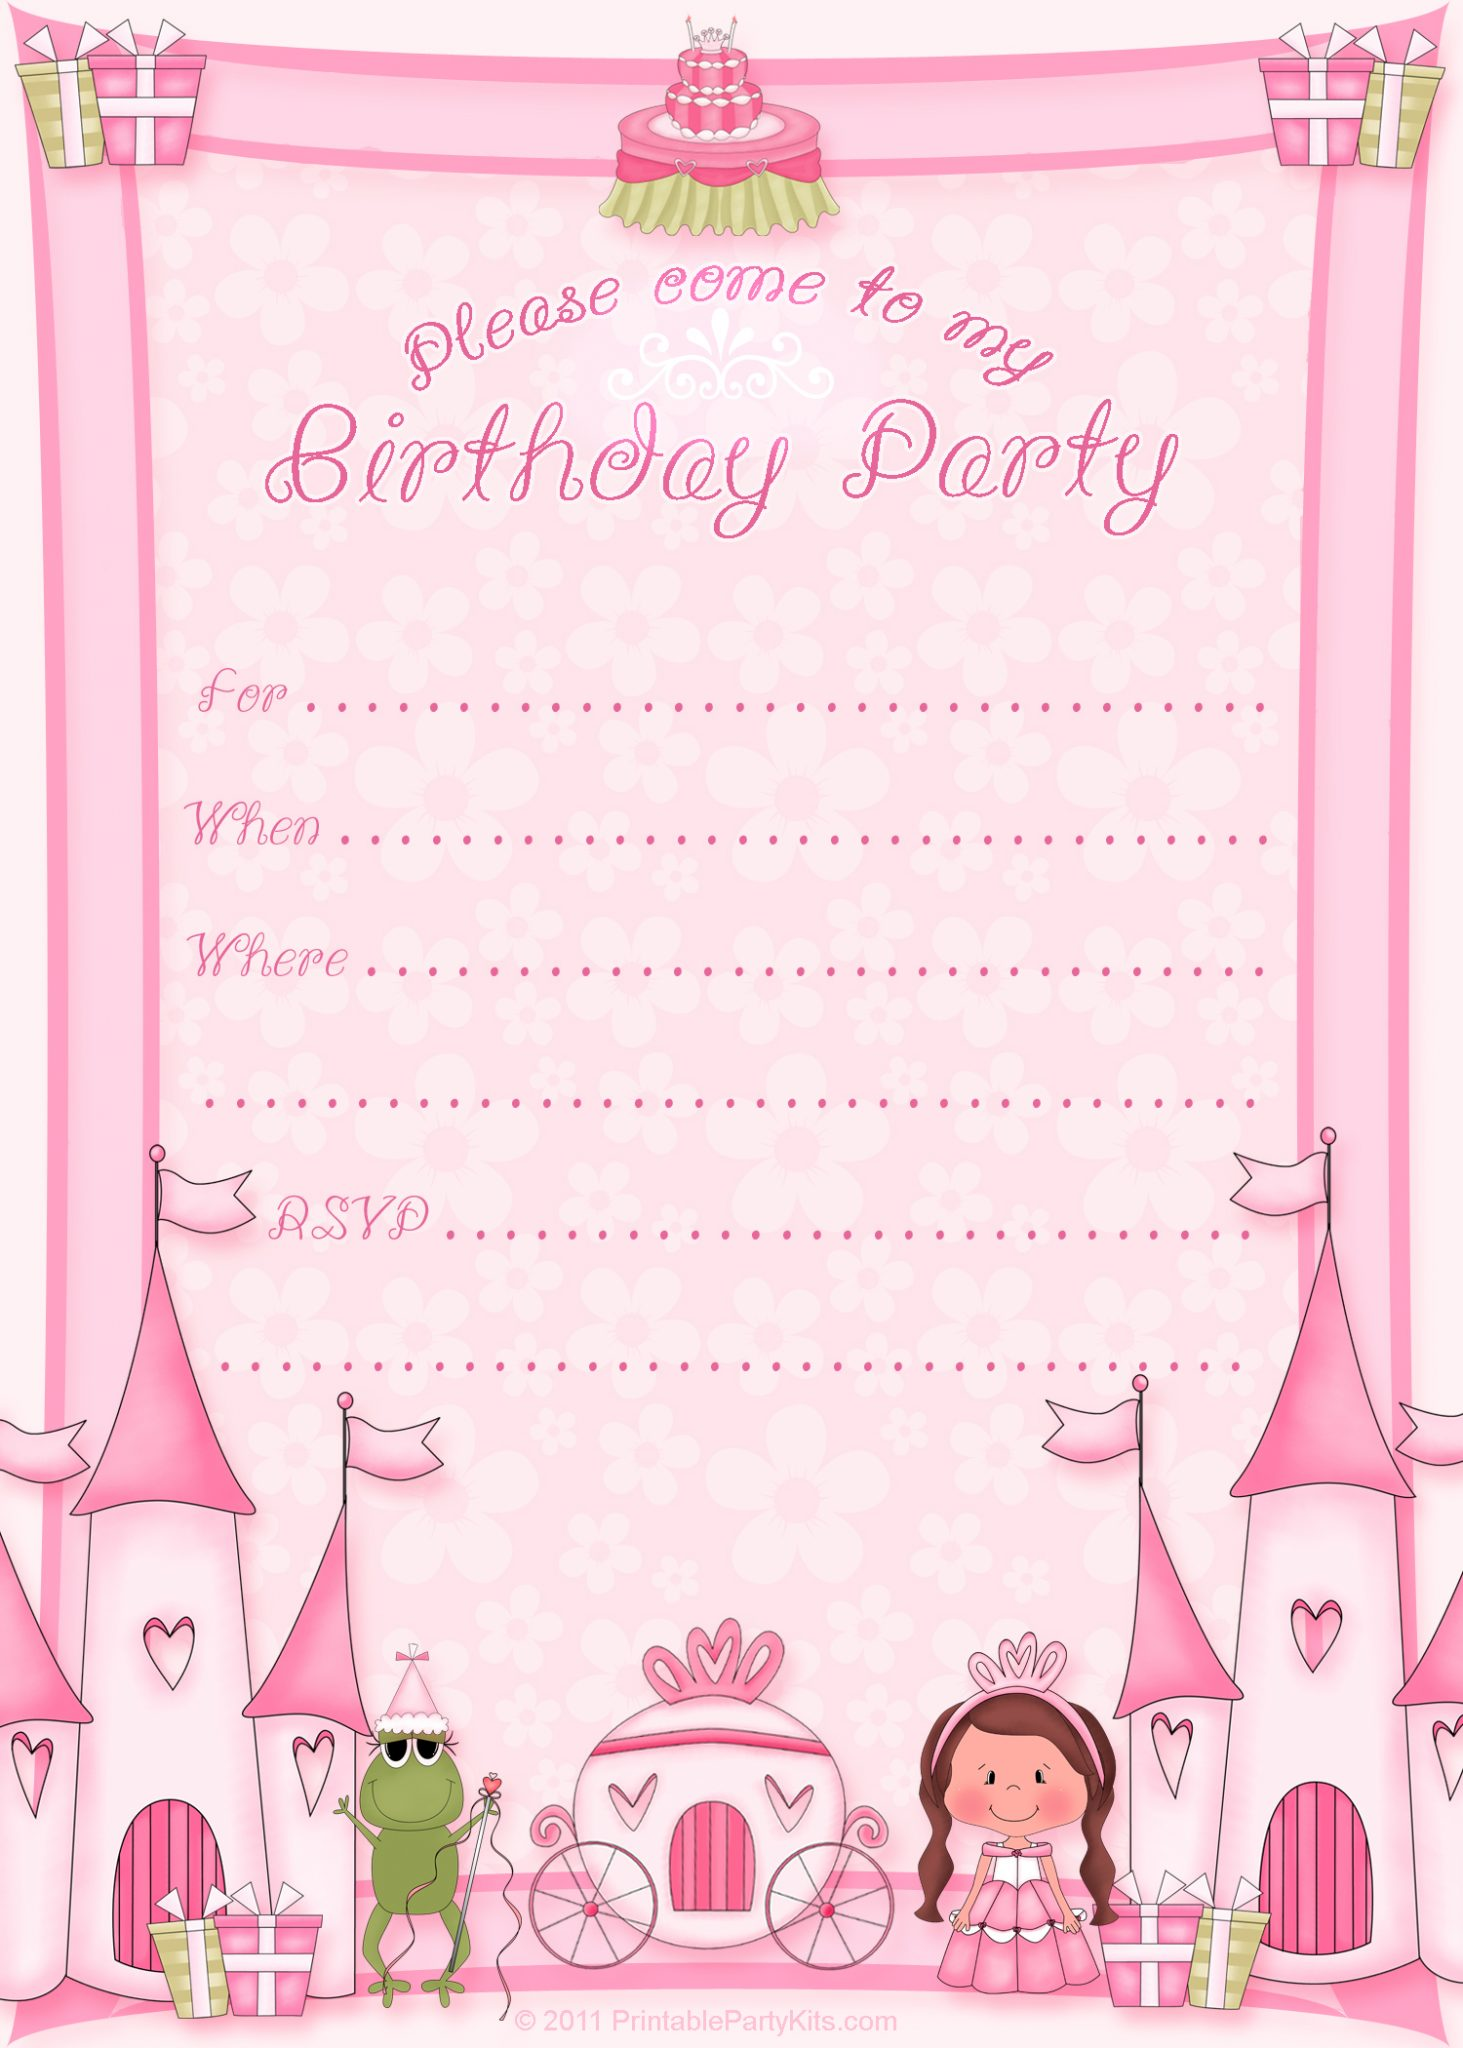 ... 2100 · 1132 kB · jpeg, Birthday Party Invitation Template Free